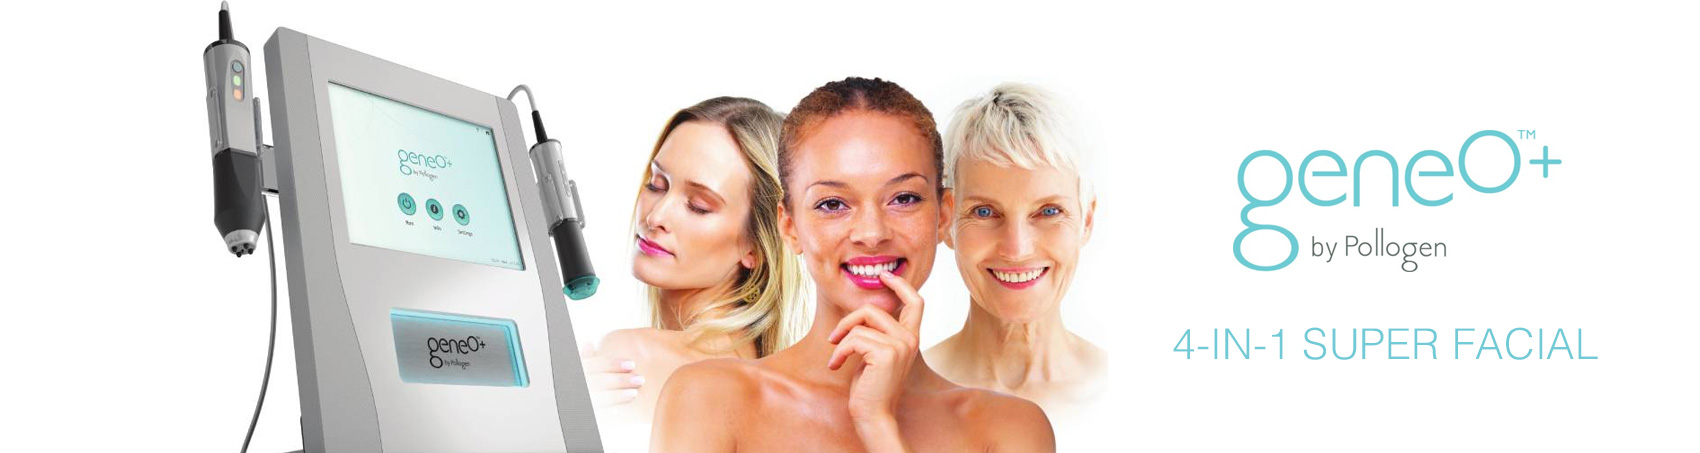 Geneo+ Radio frequency skin tightening facial